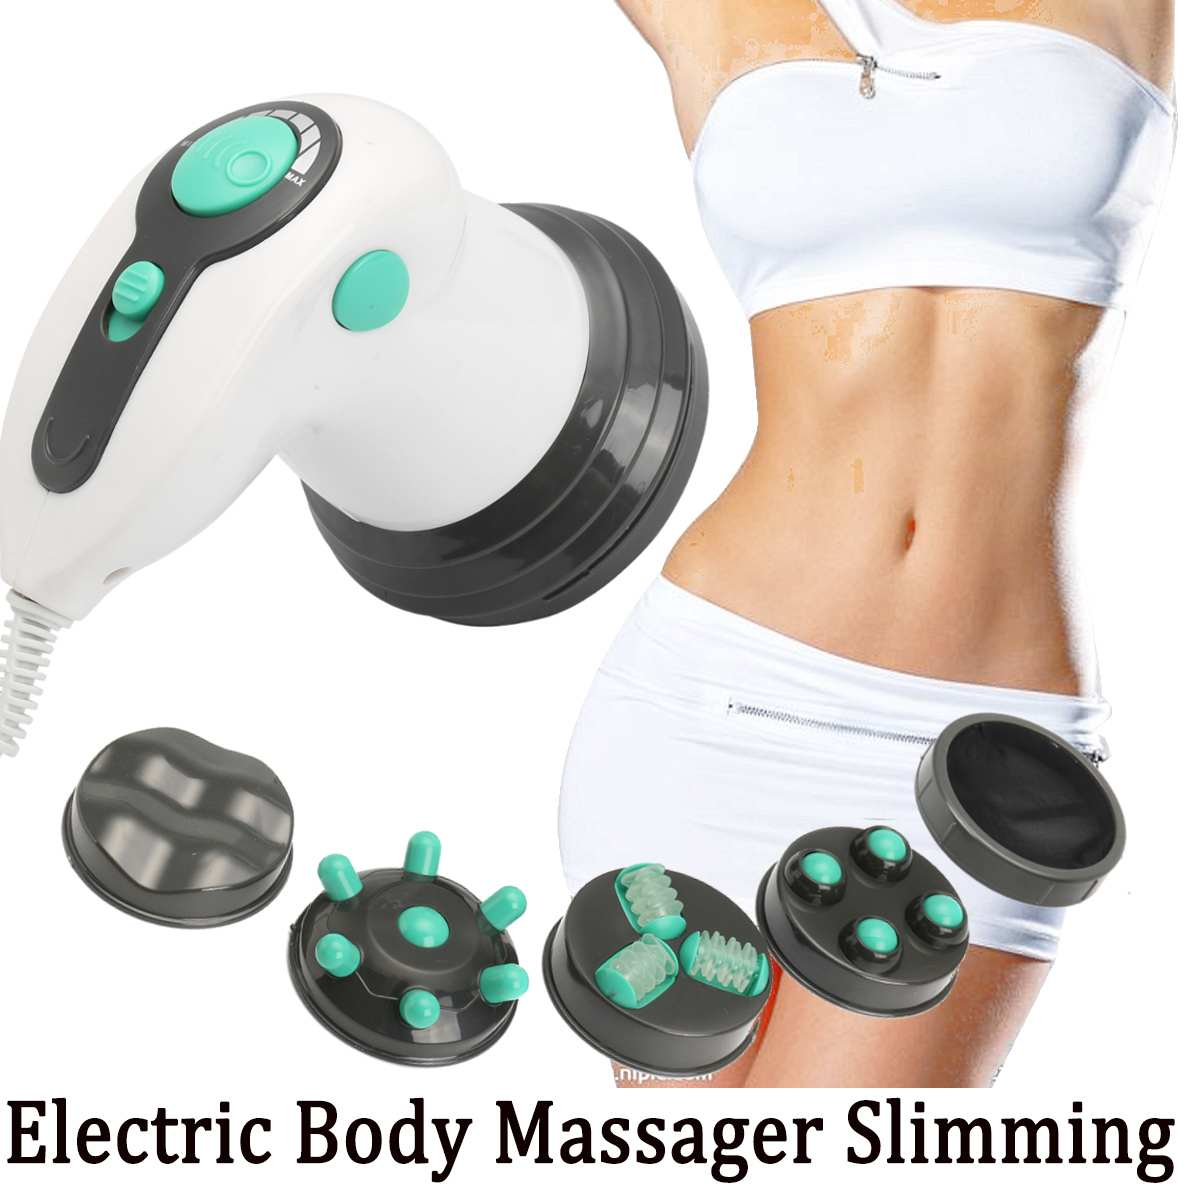 Electric Body Massager Slimming Anti-cellulite Machine Massage Women Full Body Slim Relax Professional Beauty Tool roll